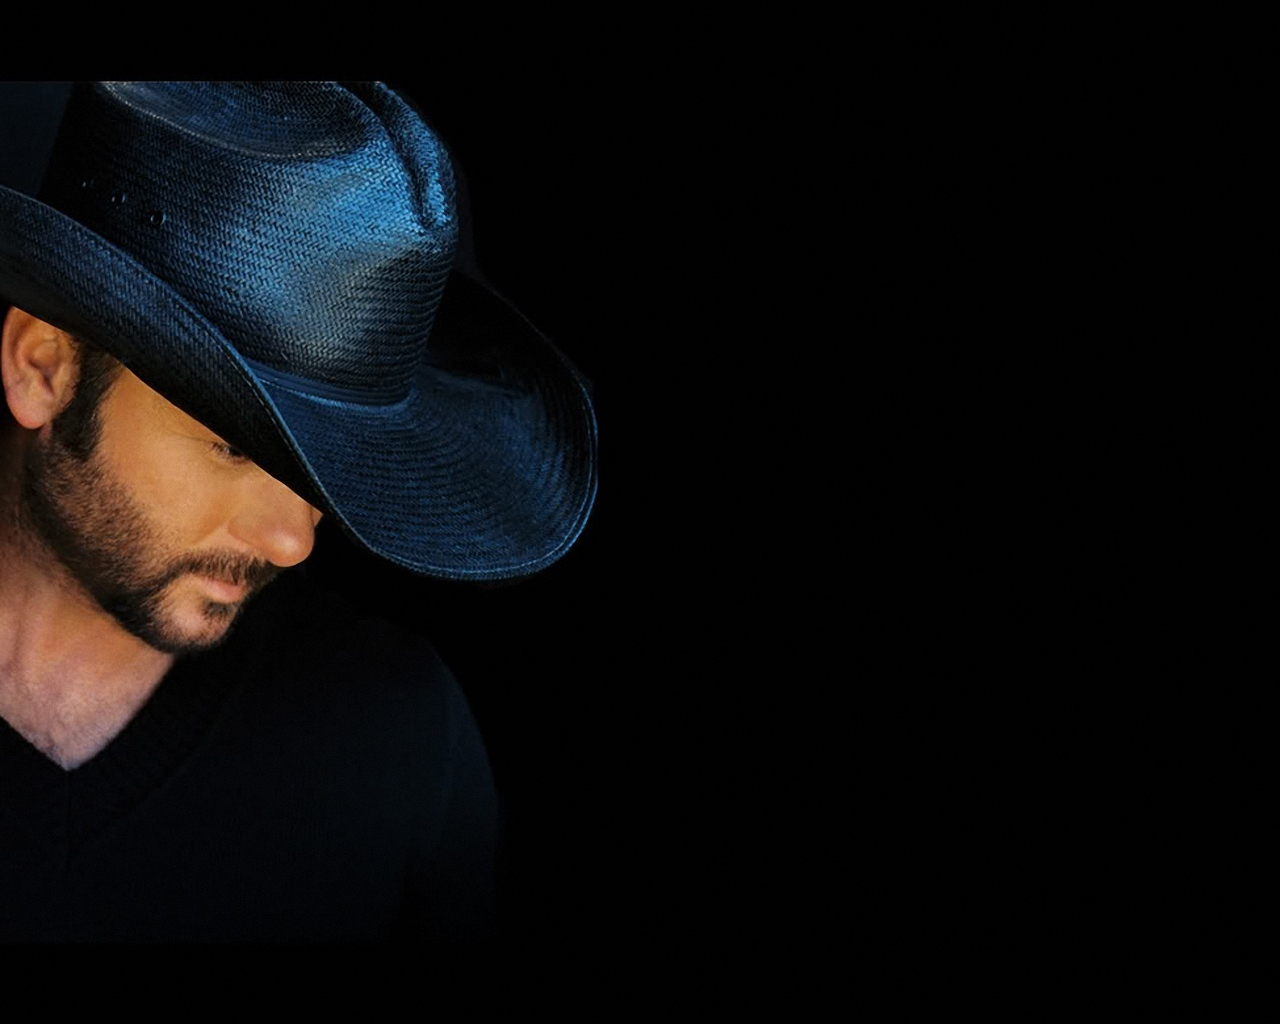 Tim McGraw In Black Hat 1280x1024 Wallpapers 1280x1024 Wallpapers 1280x1024